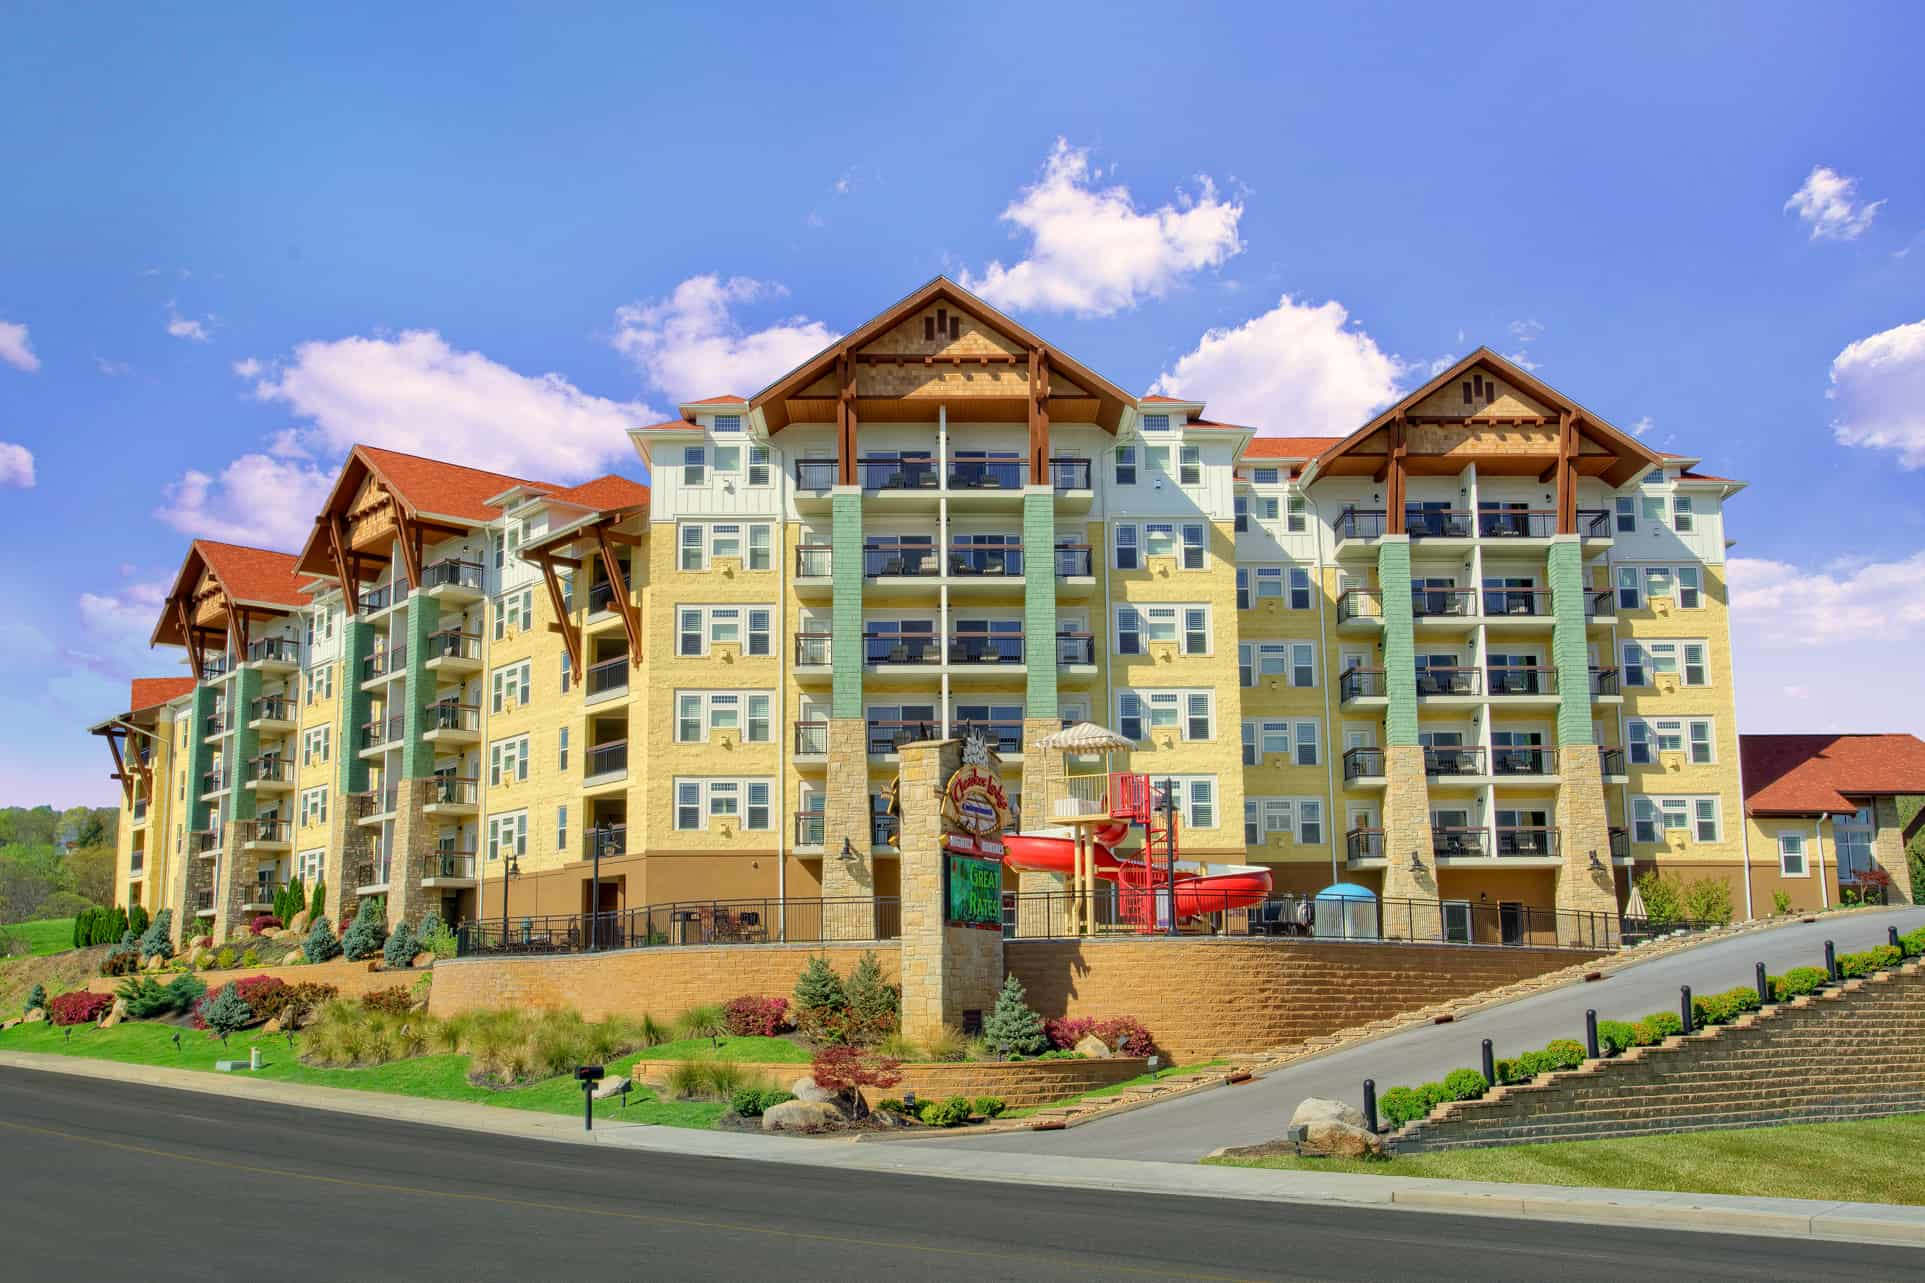 The exterior of Cherokee Lodge Condos in Pigeon Forge TN